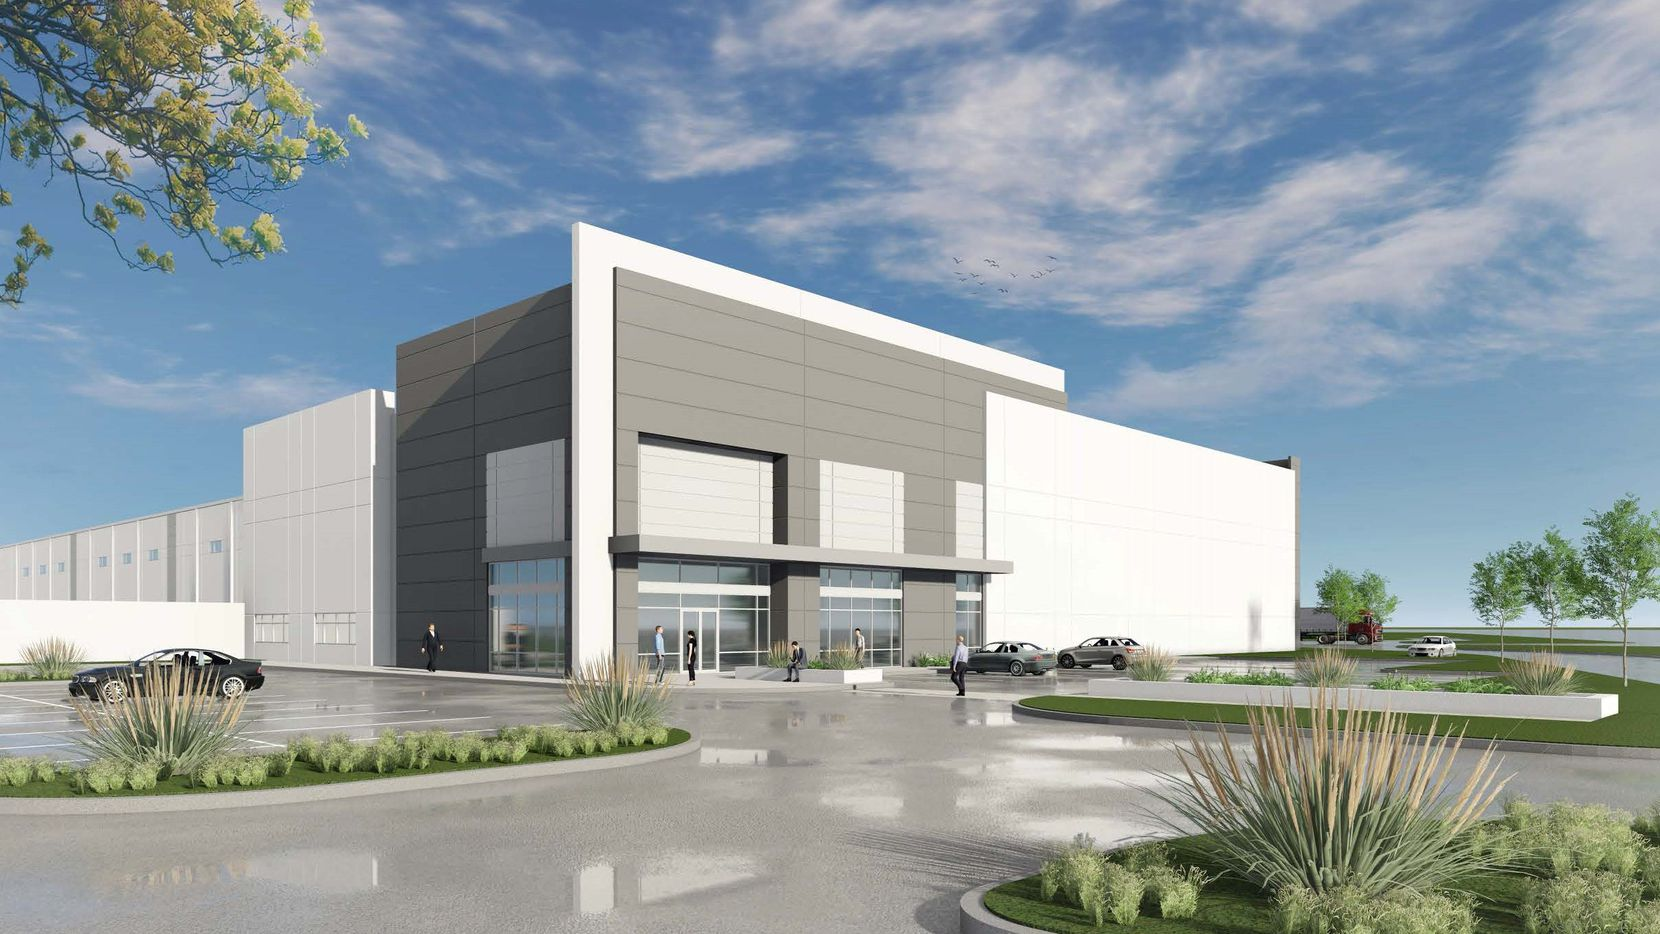 The Grand Lakes   I-30 warehouse will open later this year.